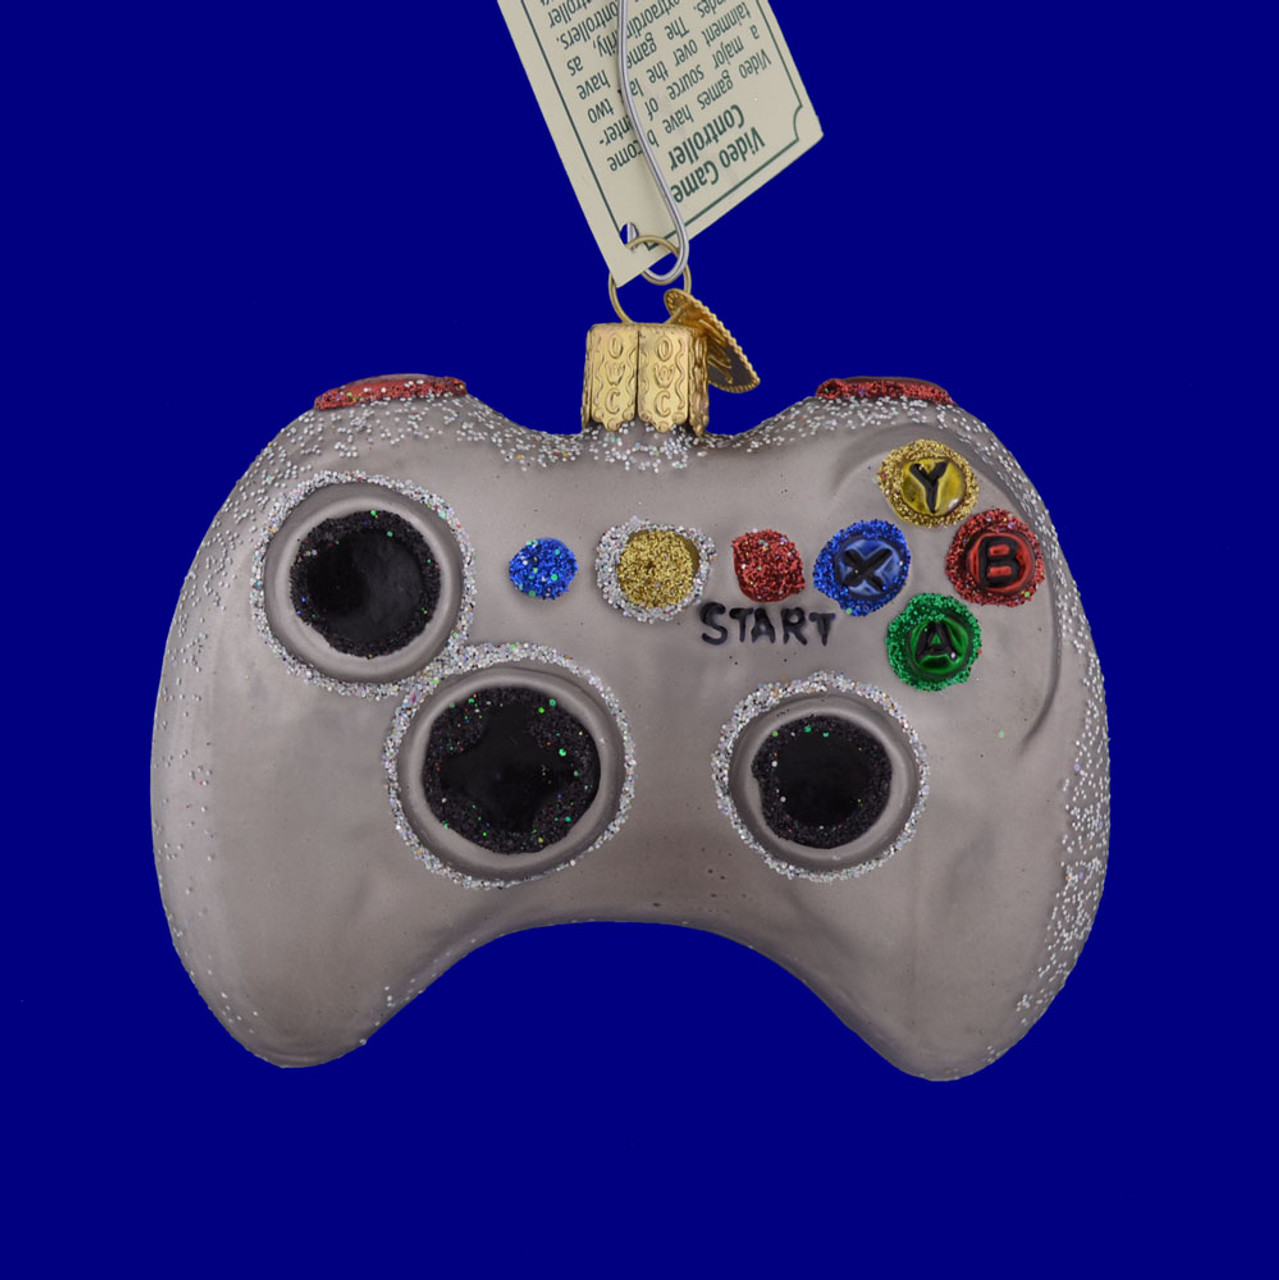 Video Game Controller Glass Ornament by Old World Christmas